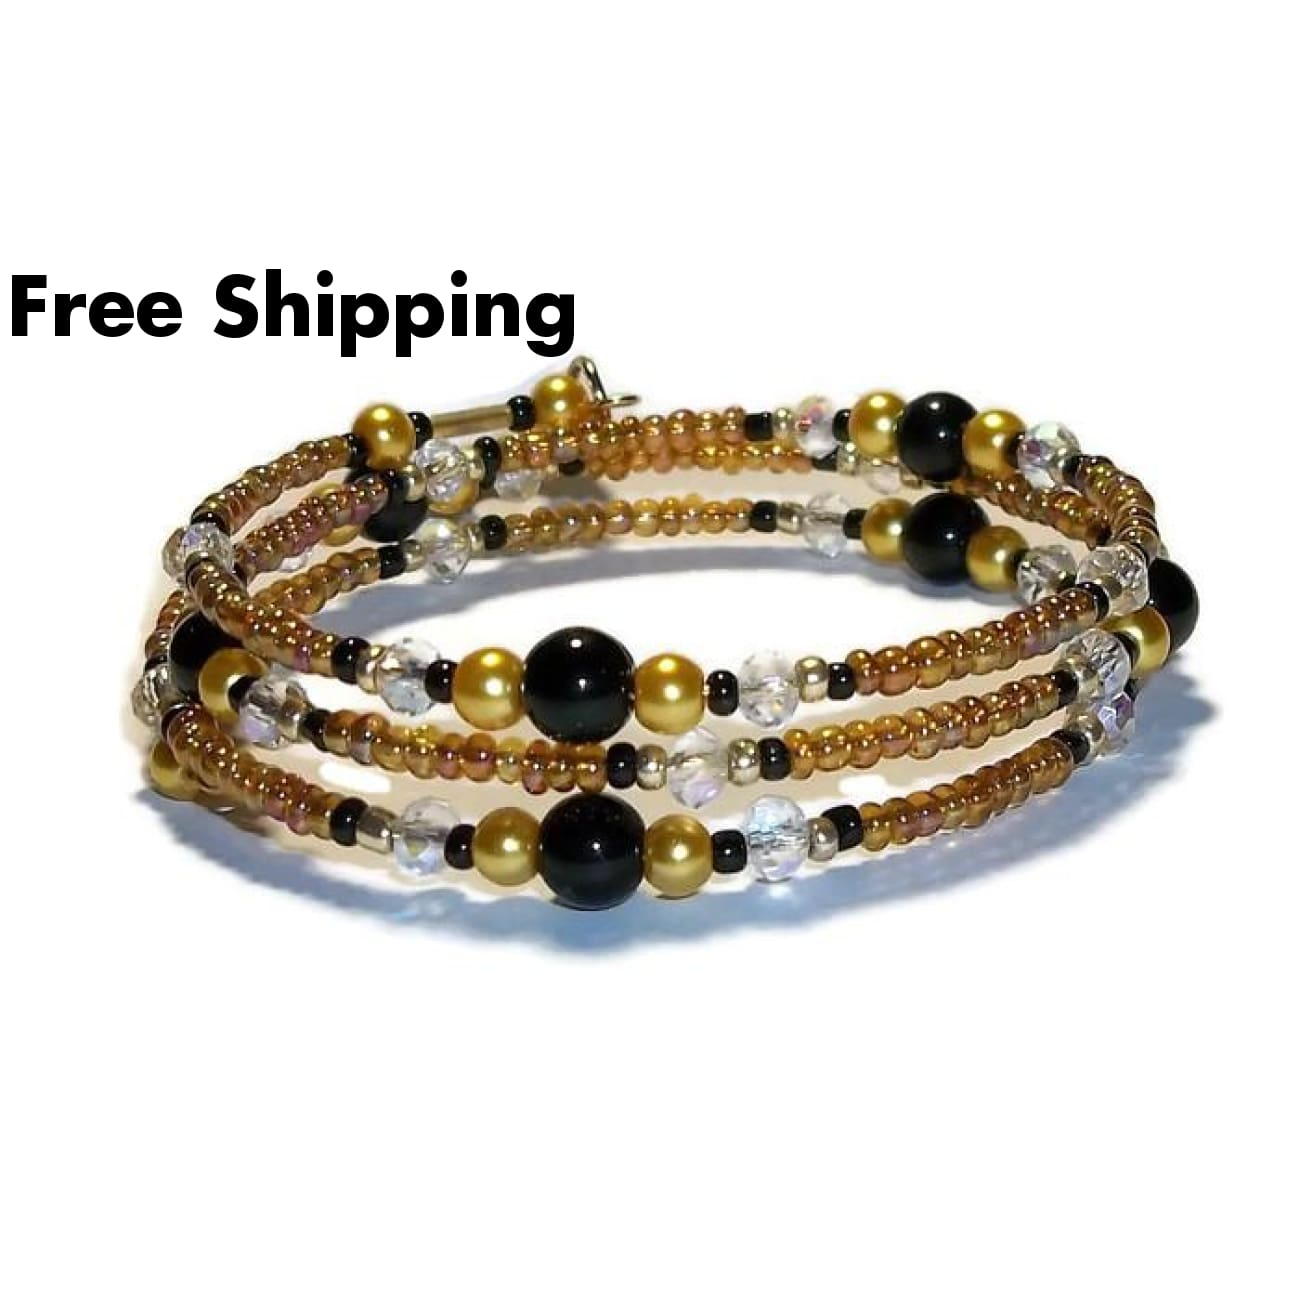 Hope Amber Carnival Glass Gold Glass Pearl Clear Ab Swarovski Crystals & Black Onyx Beaded Artisan Crafted 3 Wrap Bracelet (Xs_S) - New